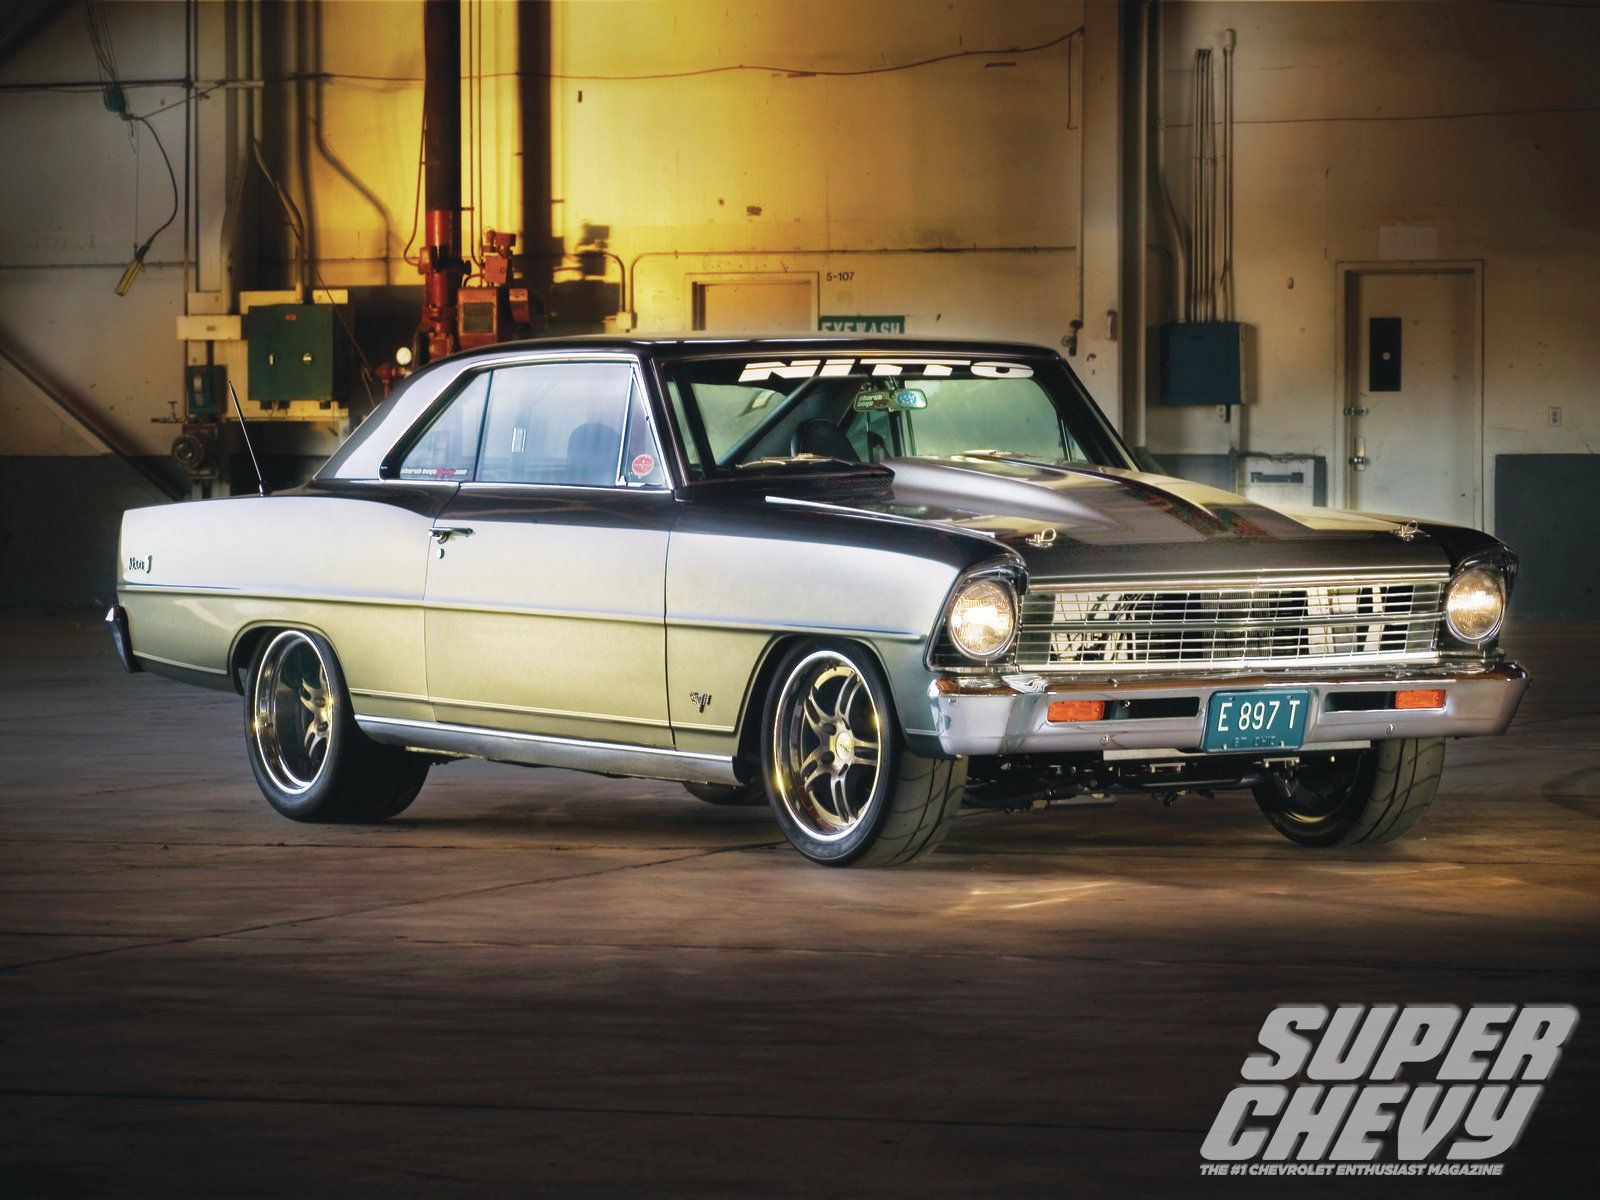 1967 Chevy Nova Cars Old Muscle Cars Modern Muscle Cars Chevy